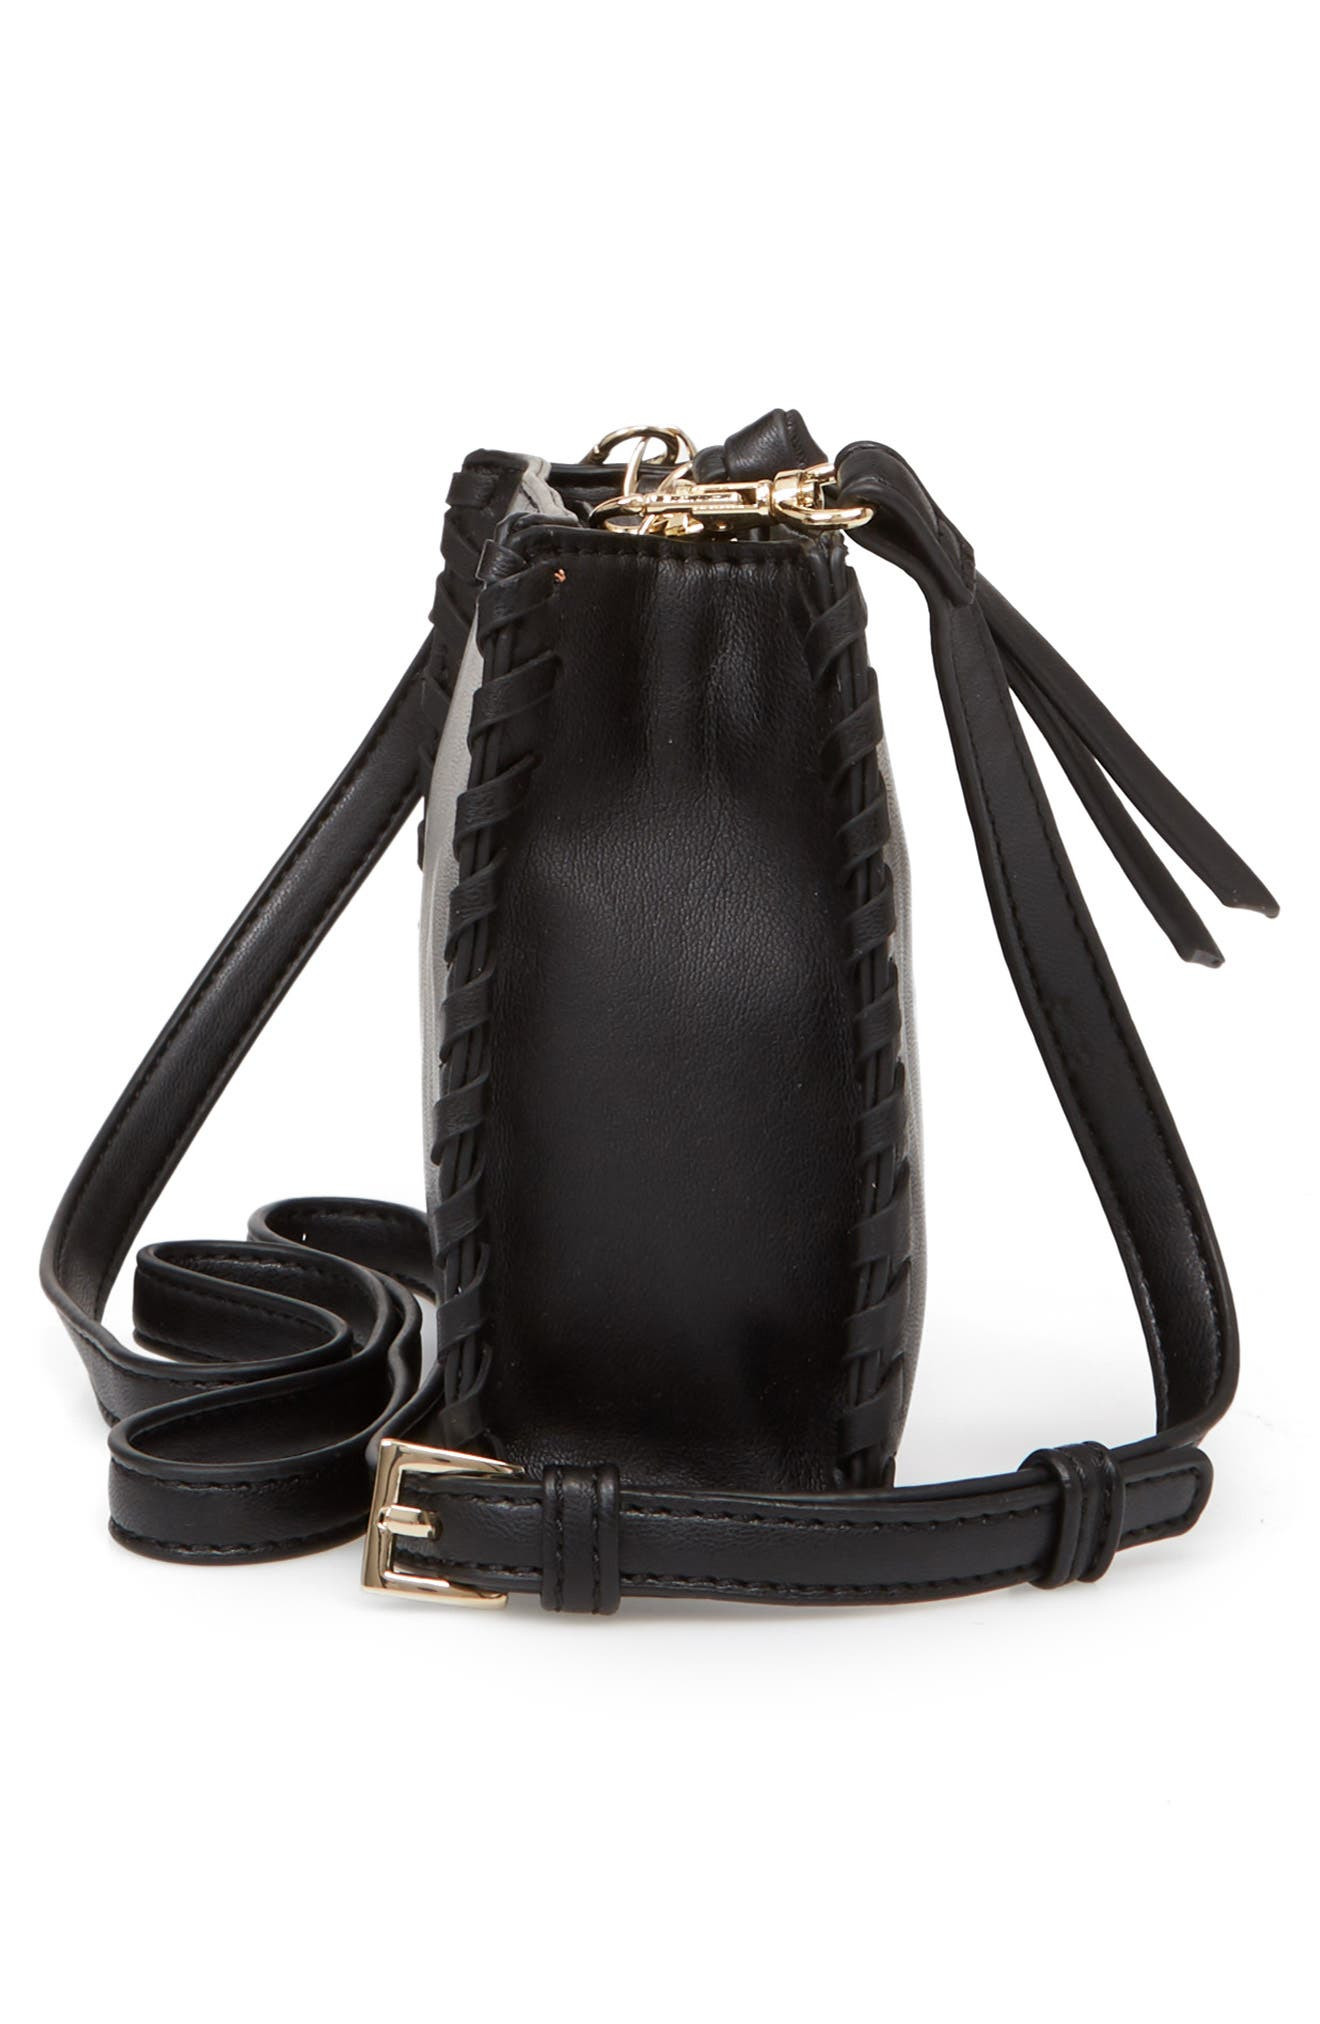 Cadence Whipstitch Faux Leather Crossbody Bag,                             Alternate thumbnail 5, color,                             001